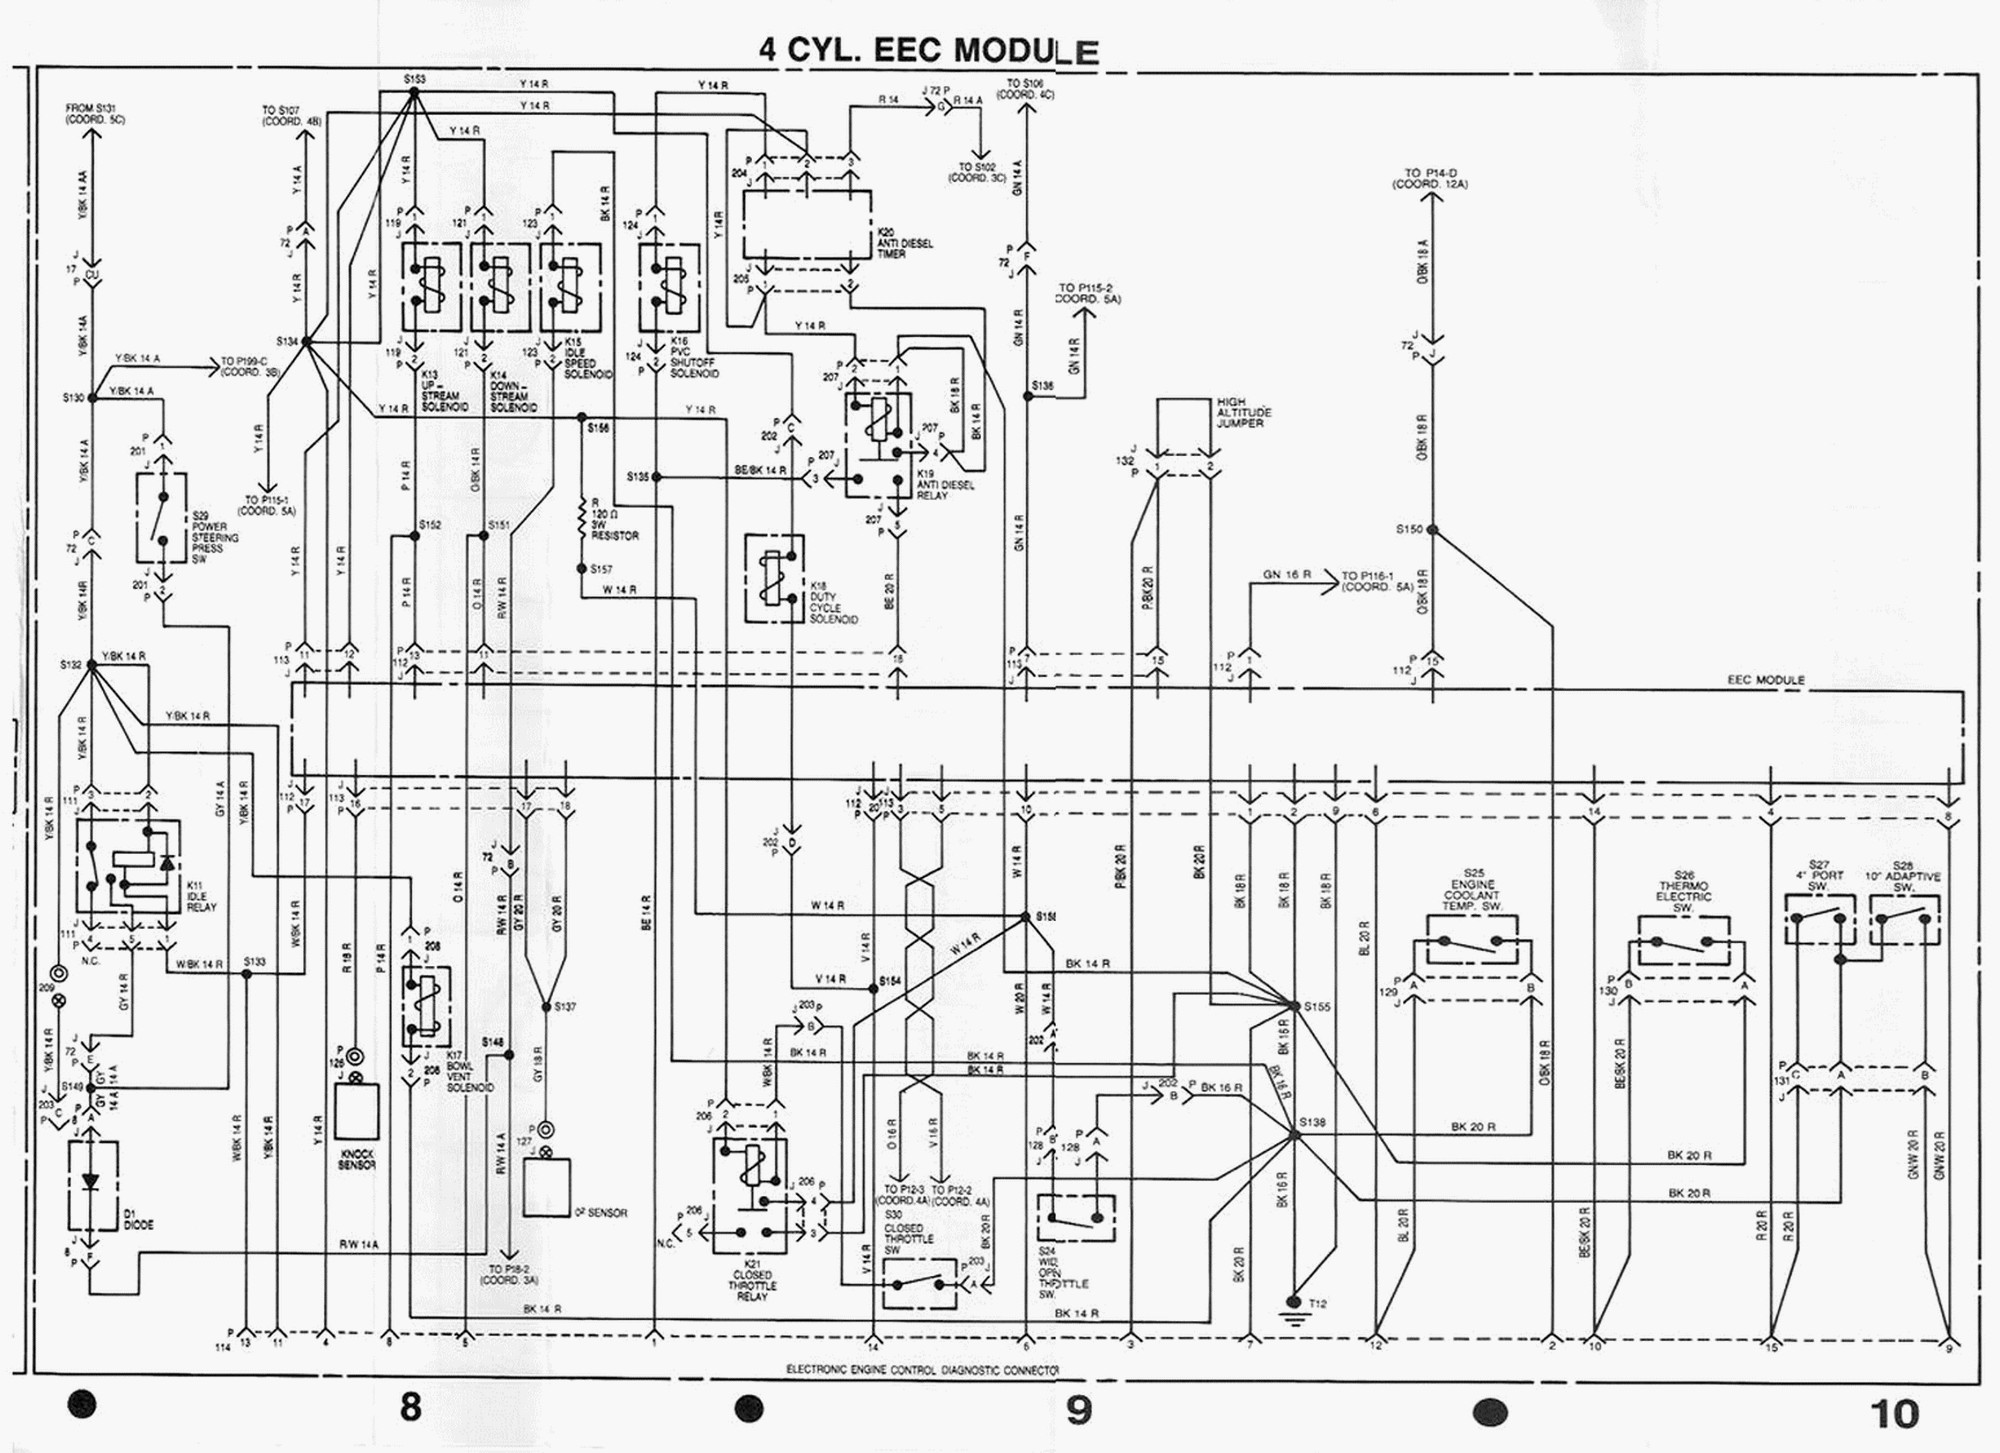 86 monte carlo wiring diagram 86 image wiring diagram jeep cherokee sport wiring diagram jeep discover your wiring on 86 monte carlo wiring diagram